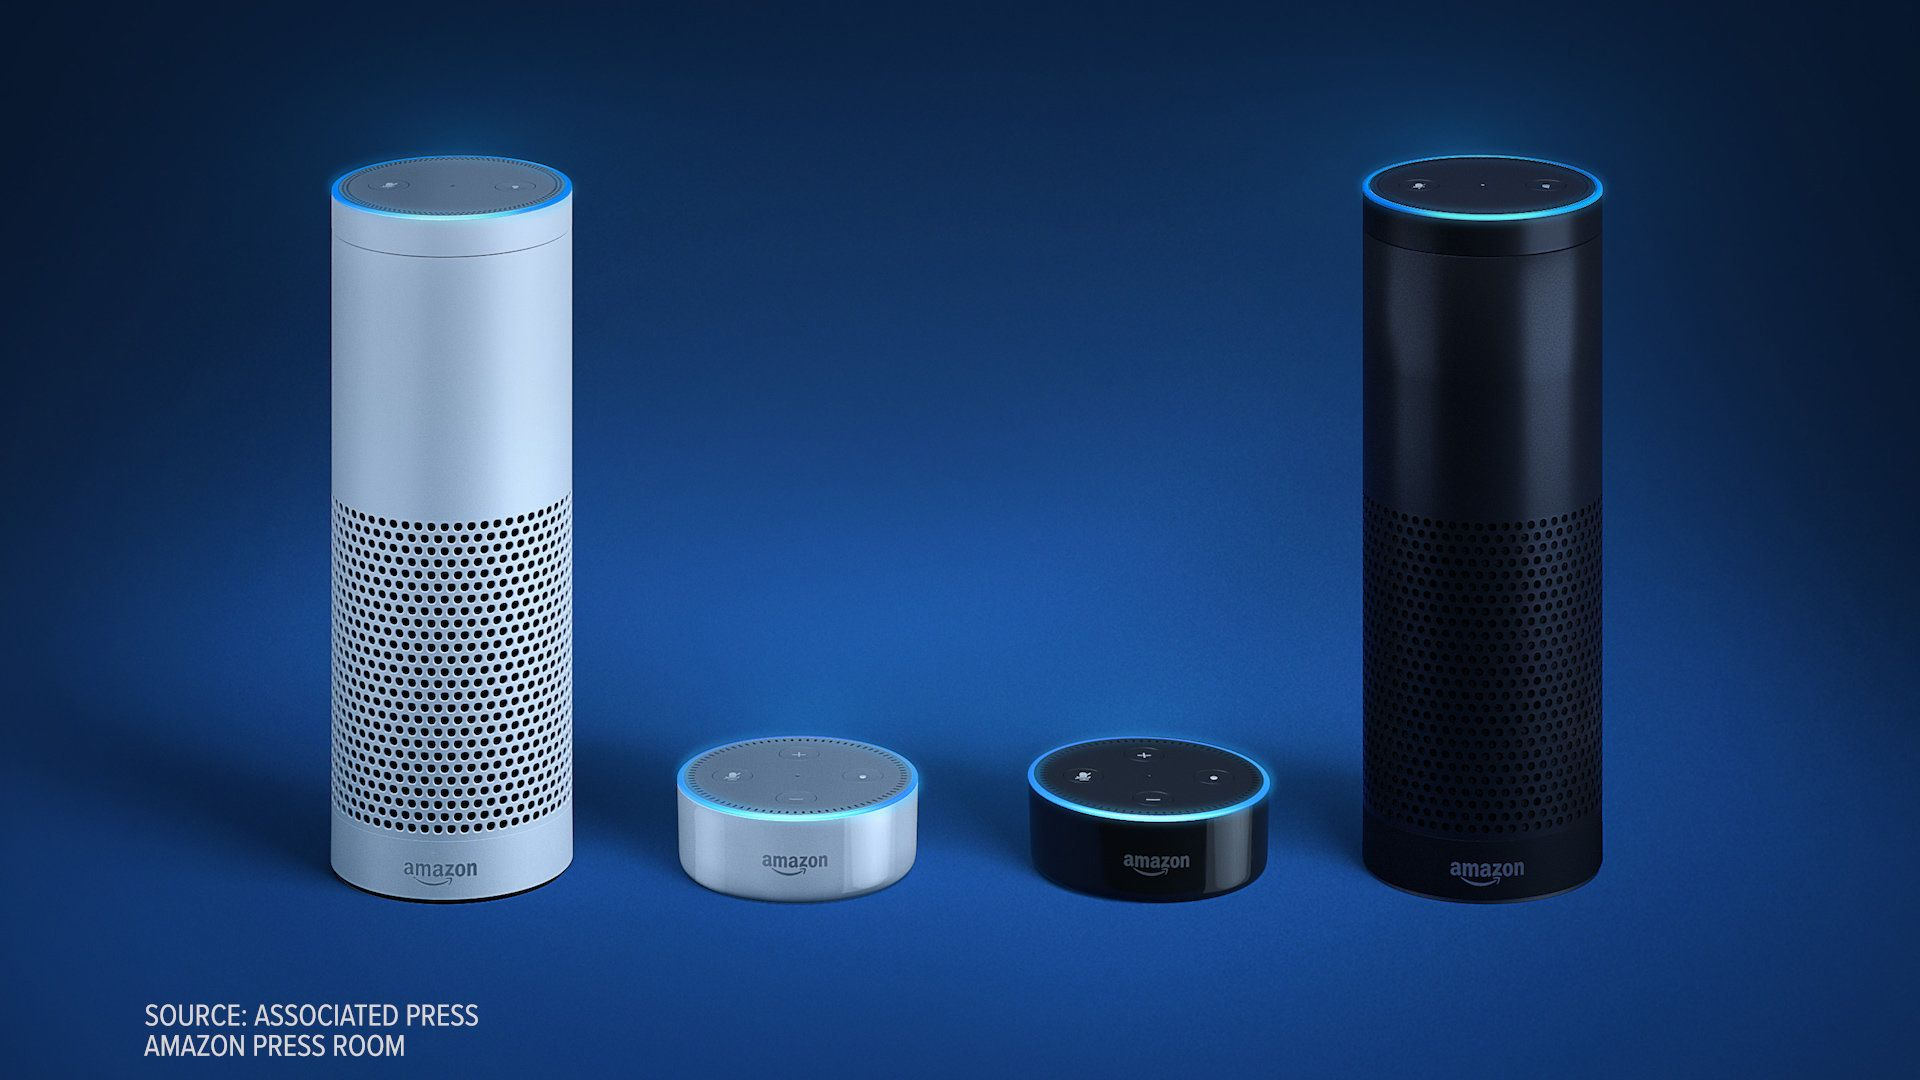 Alexa will only answer age-appropriate questions from children